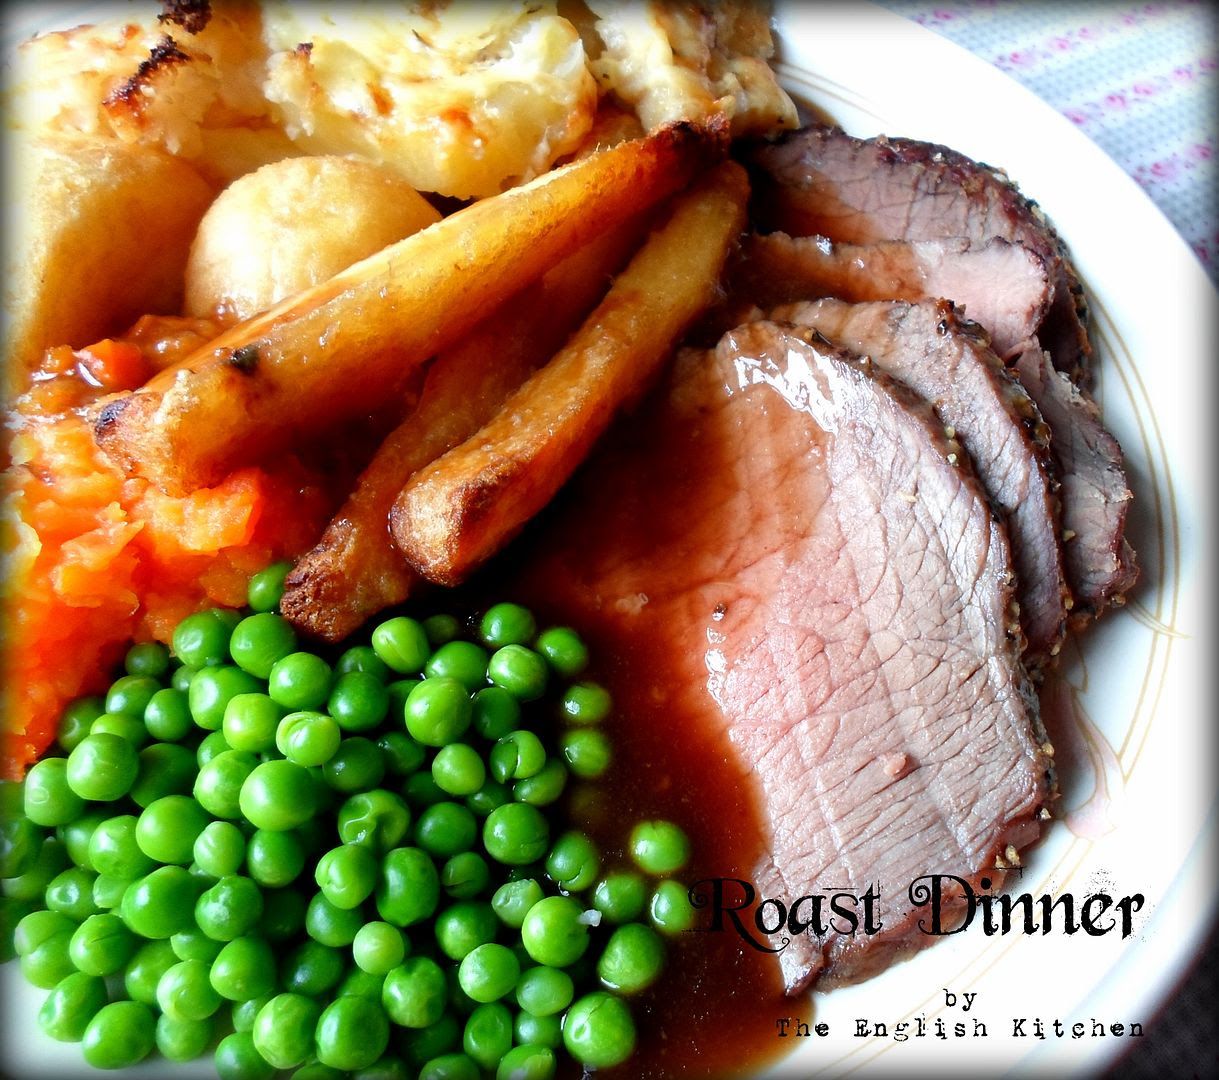 photo RoastDinner_zpsf86df8ca.jpg